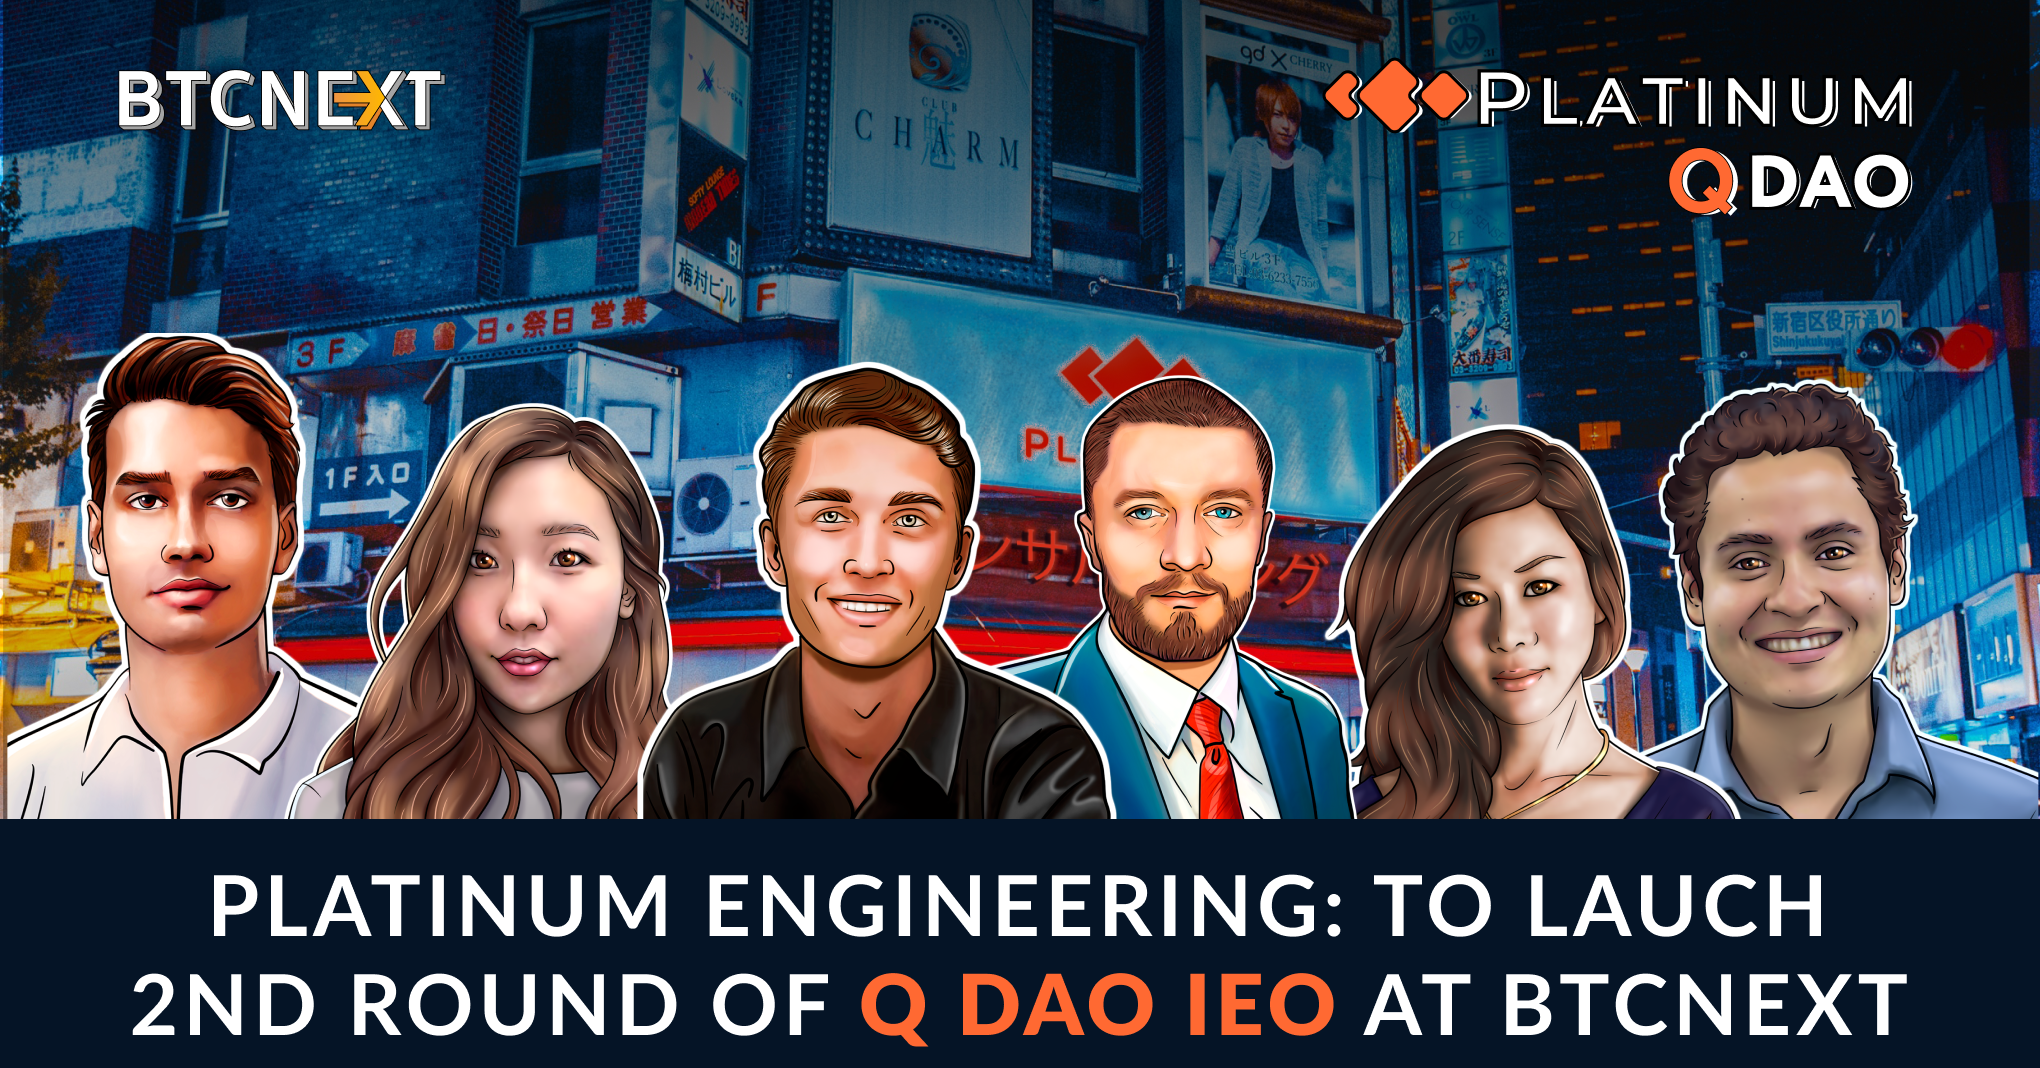 Platinum Q DAO Engineering is Holding the IEO of its Governance Coin Q DAO